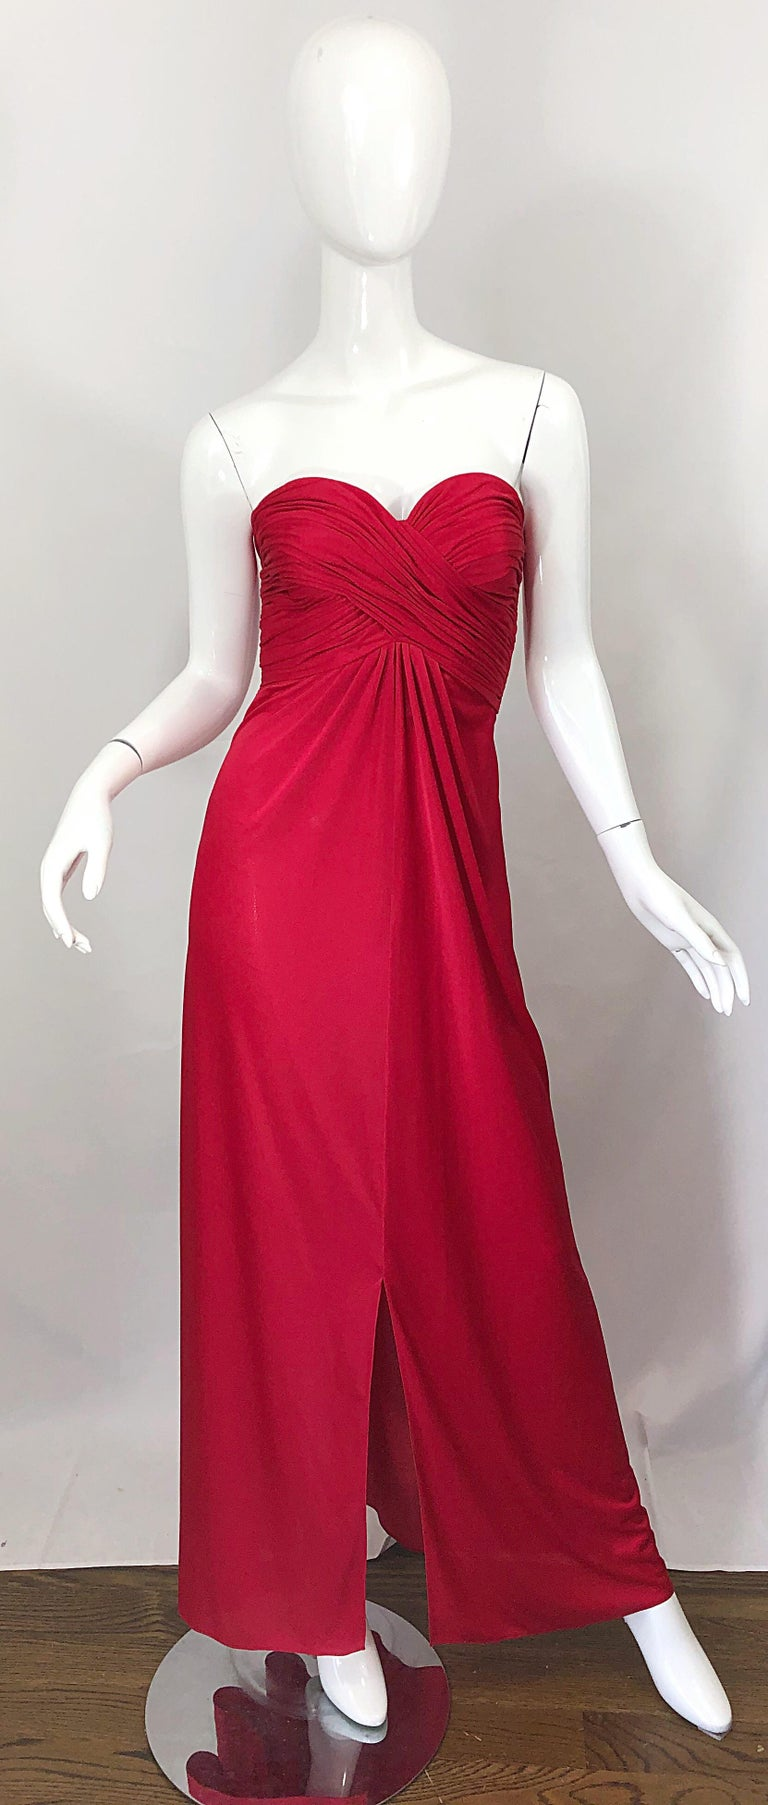 Beautiful mid 1970s LUIS ESTEVEZ lipstick red silk jersey strapless Grecian gown / maxi dress ! Features an intricate gathered boned bodice. Full metal zipper up the side with hook-and-eye closure. Slit up the center hem. Couture quality, with so